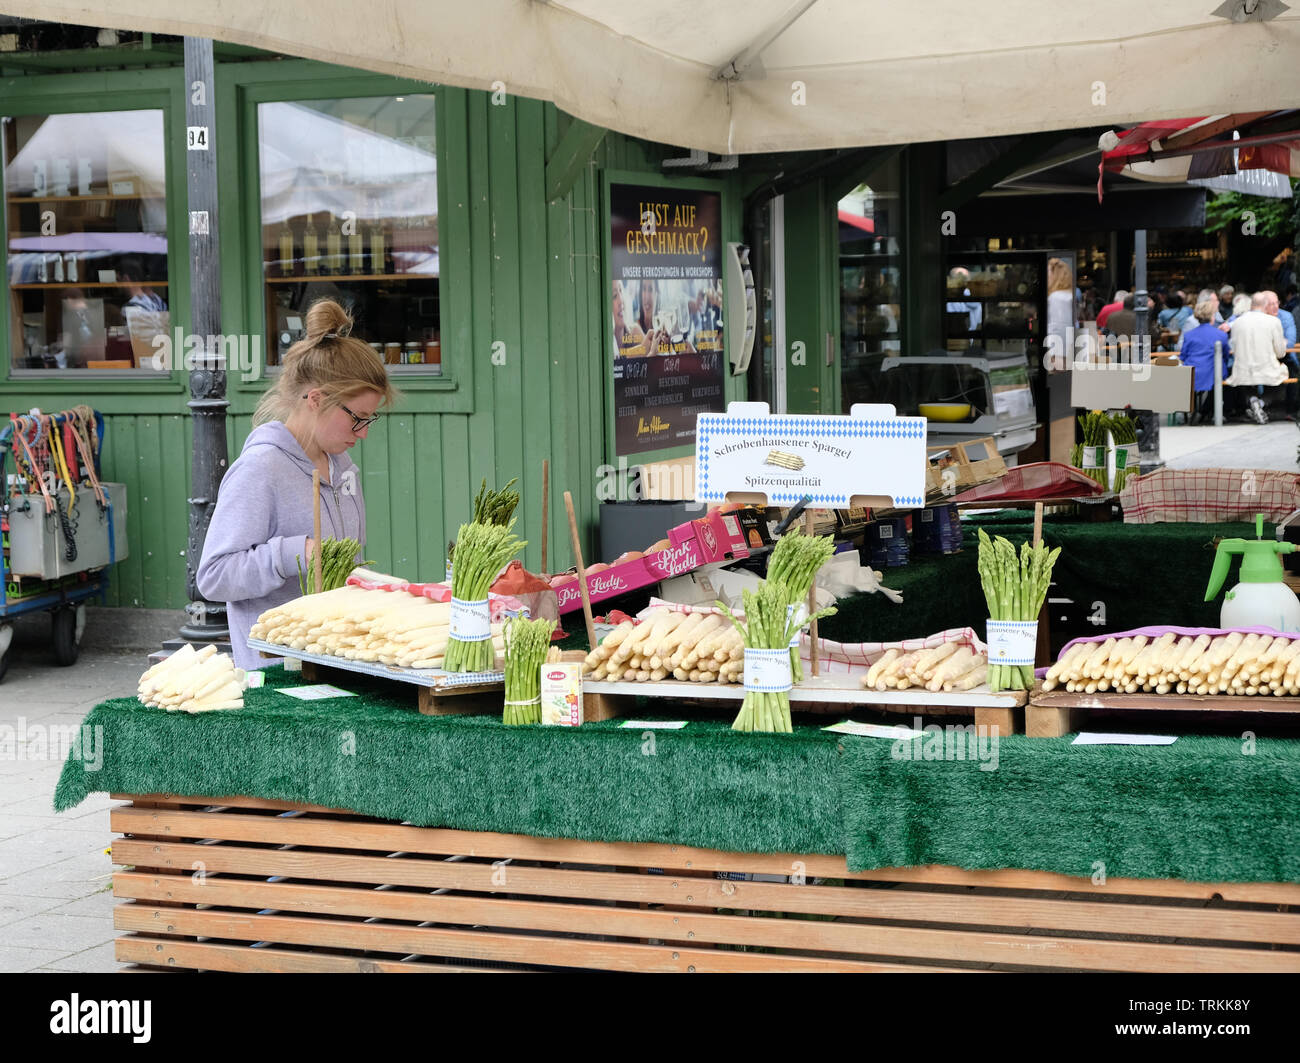 May 2019 - A young, blonde female sells white asparagus from a stand in the Victuals Market in Munich, Germany Stock Photo